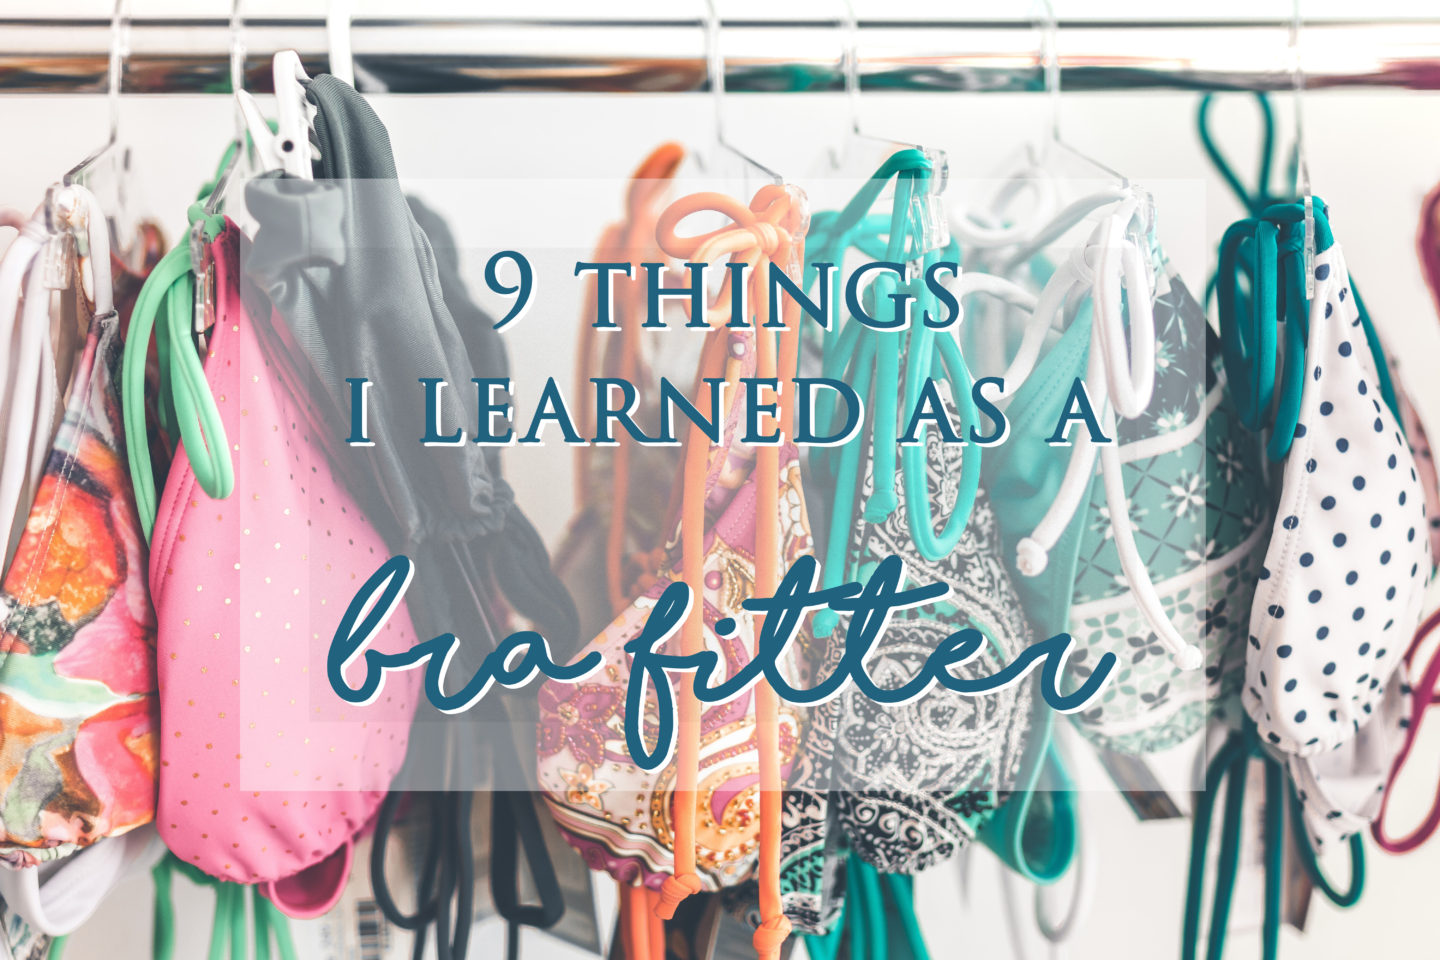 A rail of bras hanging on coathangers, with the words '9 things I learned as a bra fitter' over the image.